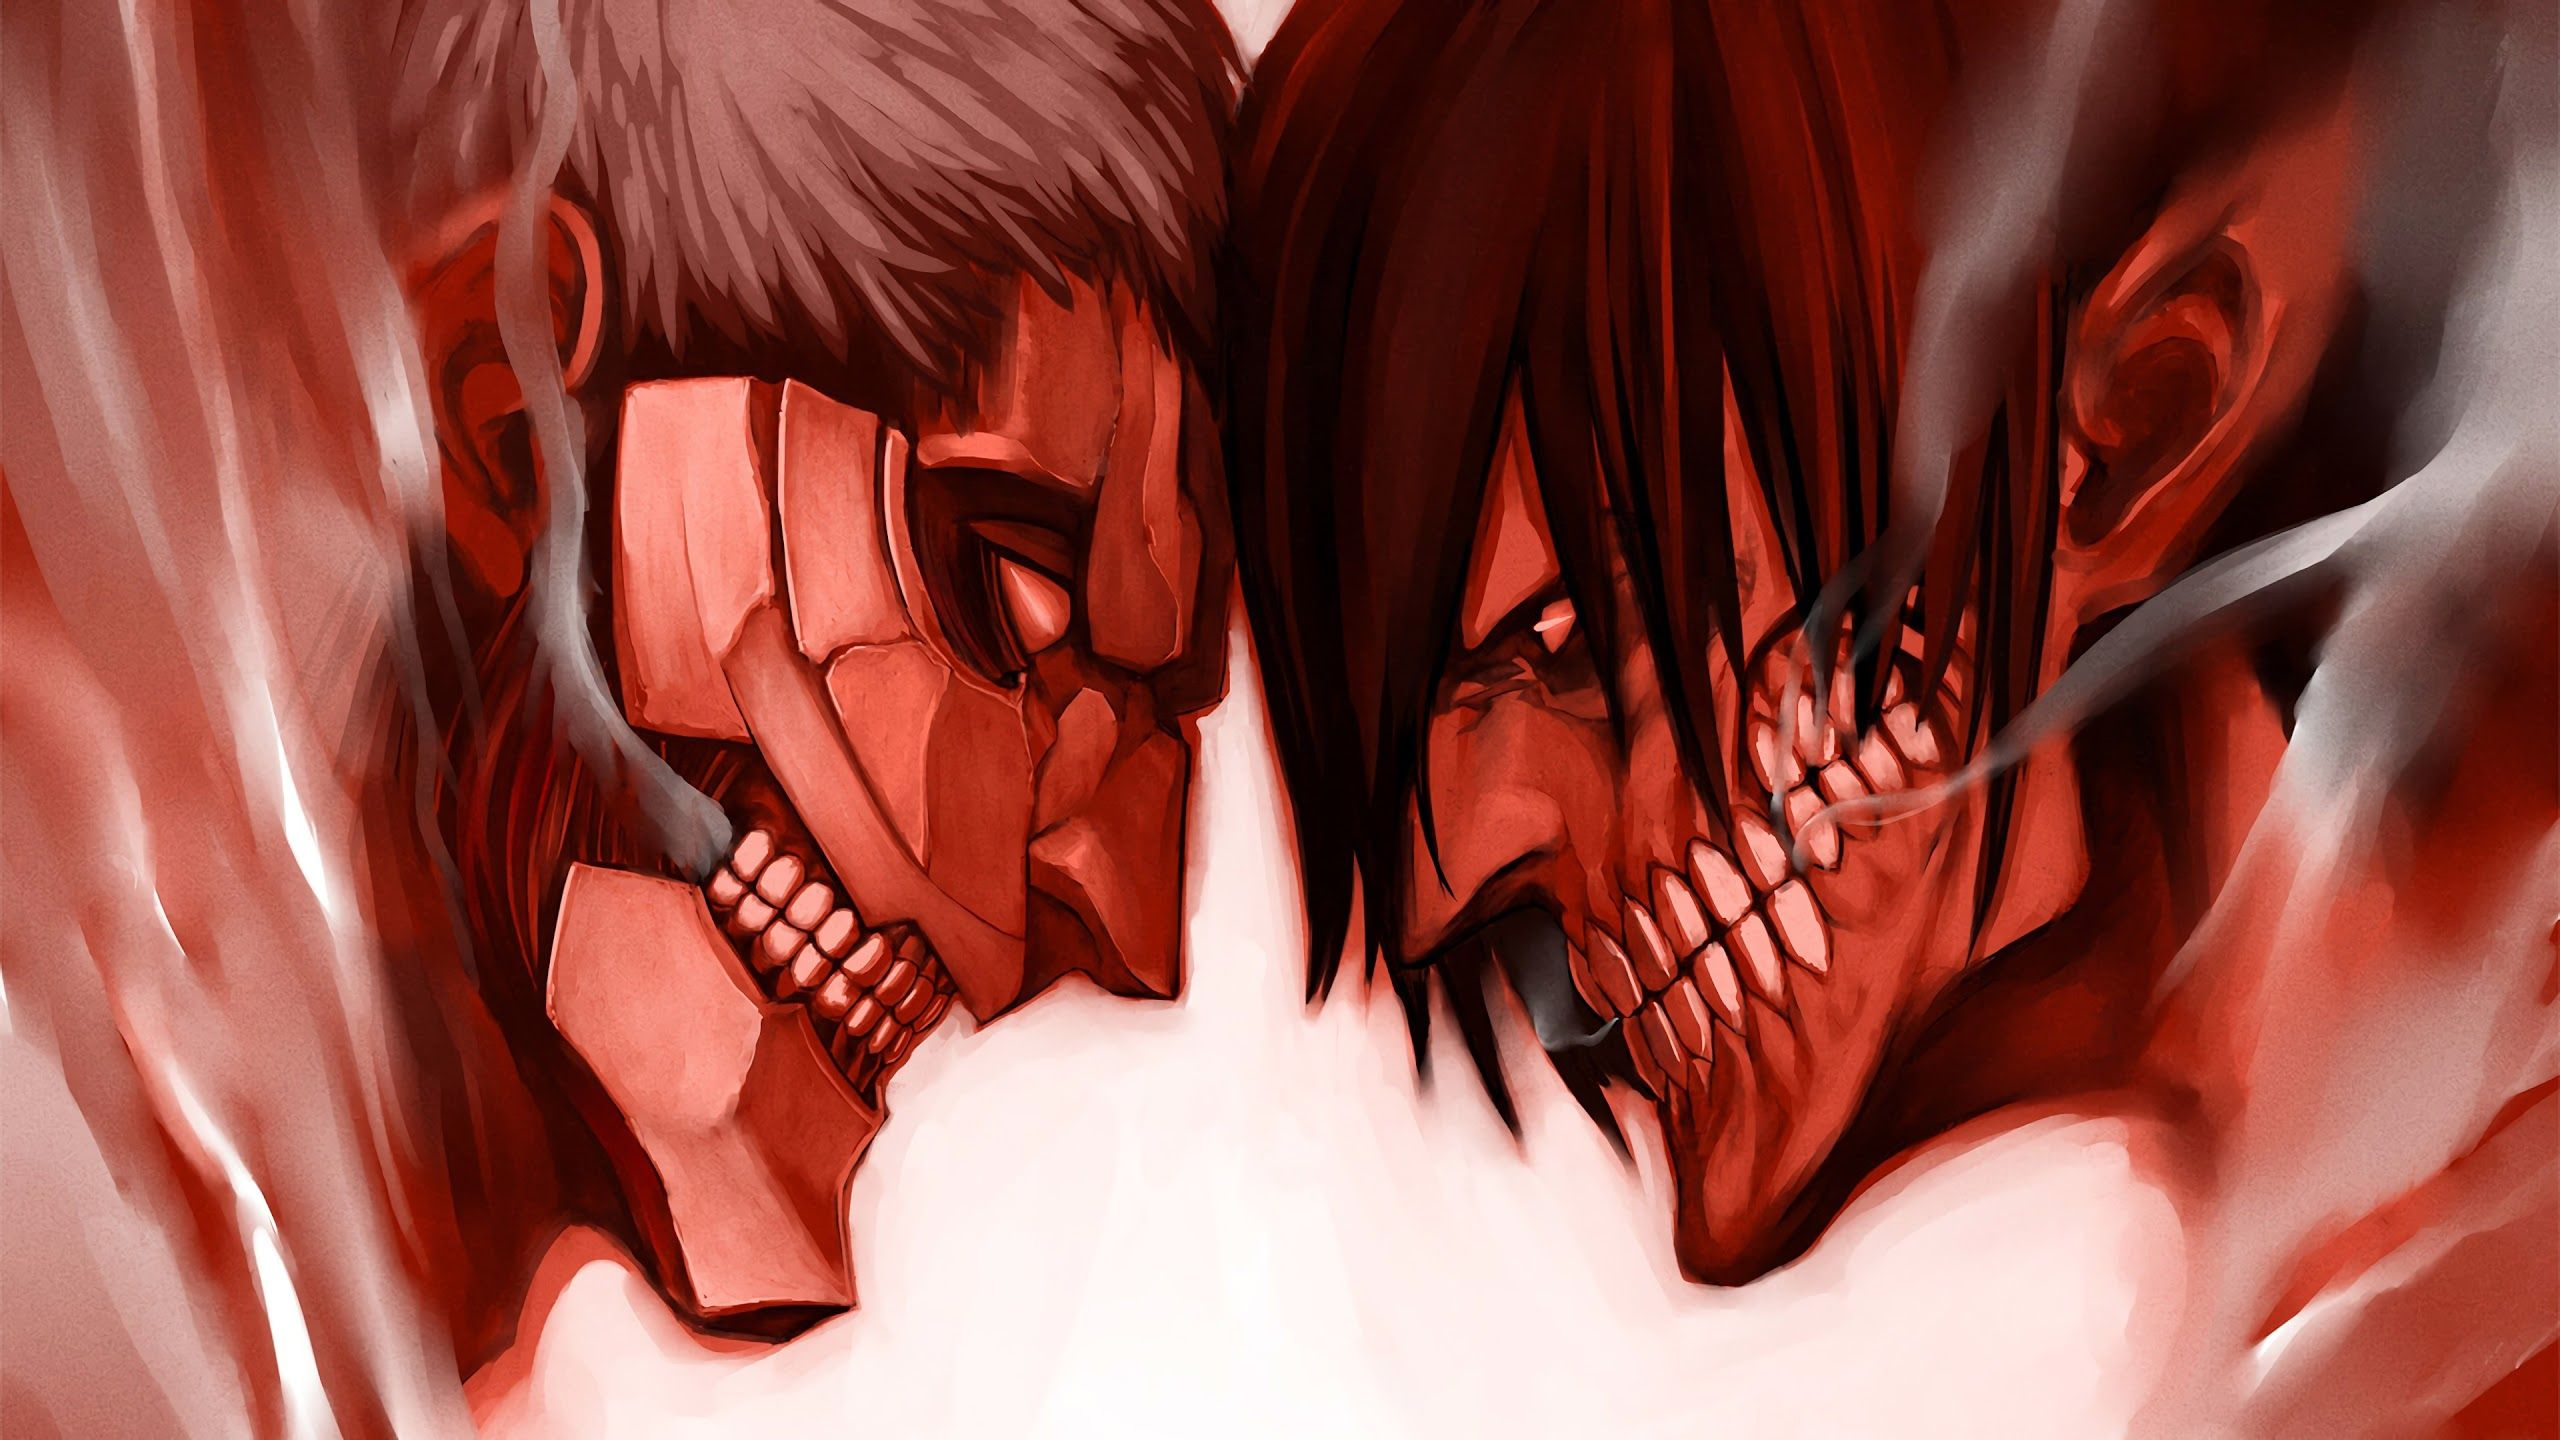 There's always talk about the quality animation in attack on titan. Armored Titan Wallpapers - Wallpaper Cave